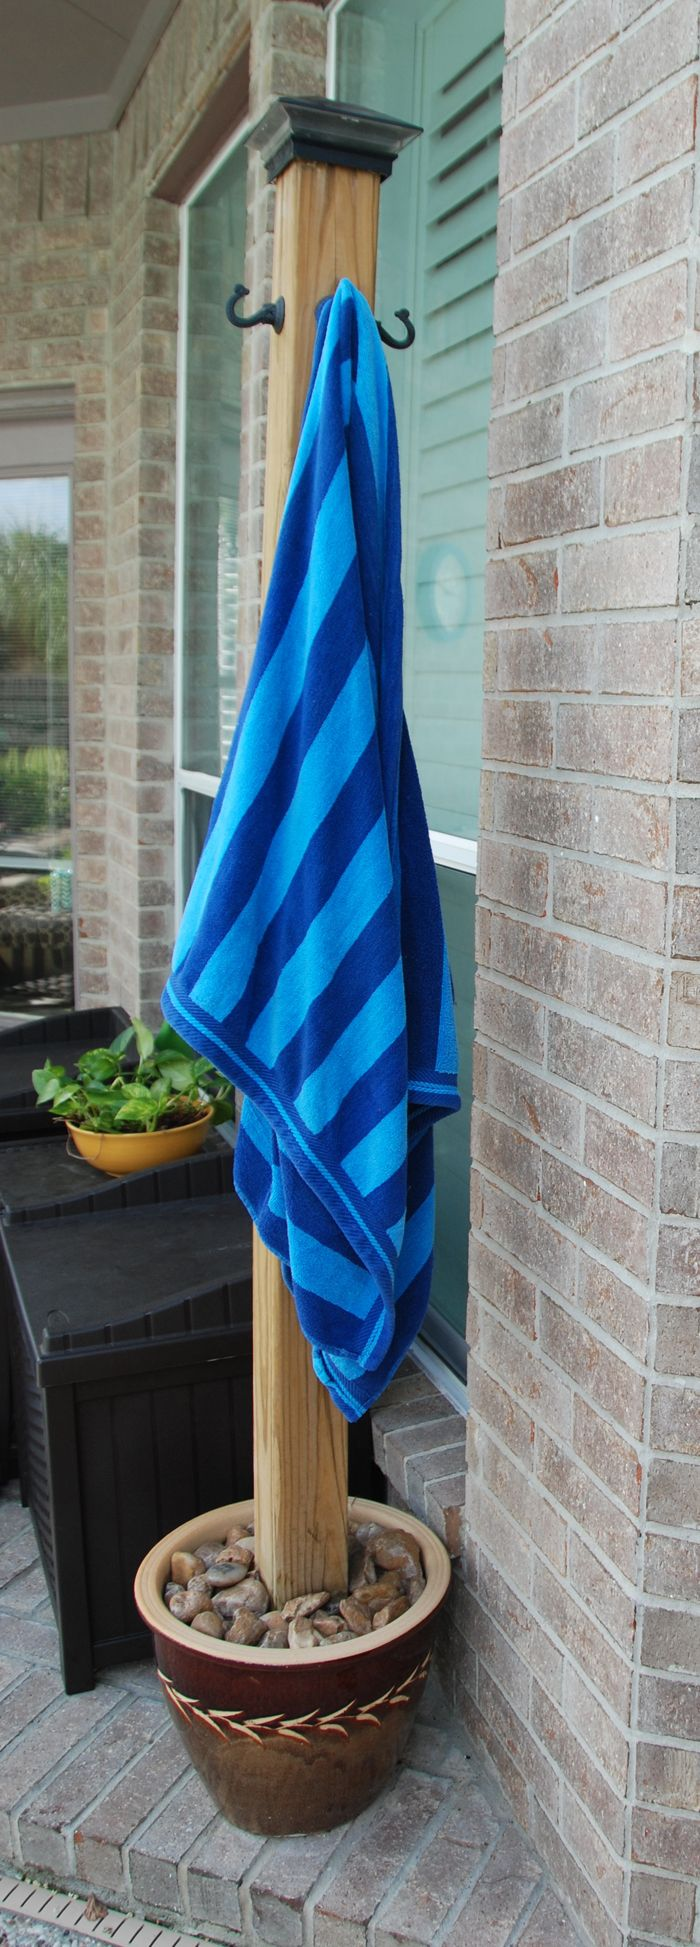 Pool Towel Rack Ideas find this pin and more on backyard pool Diy Pool Towel Holder We Made This Stand To Hang Our Wet Pool Towels To